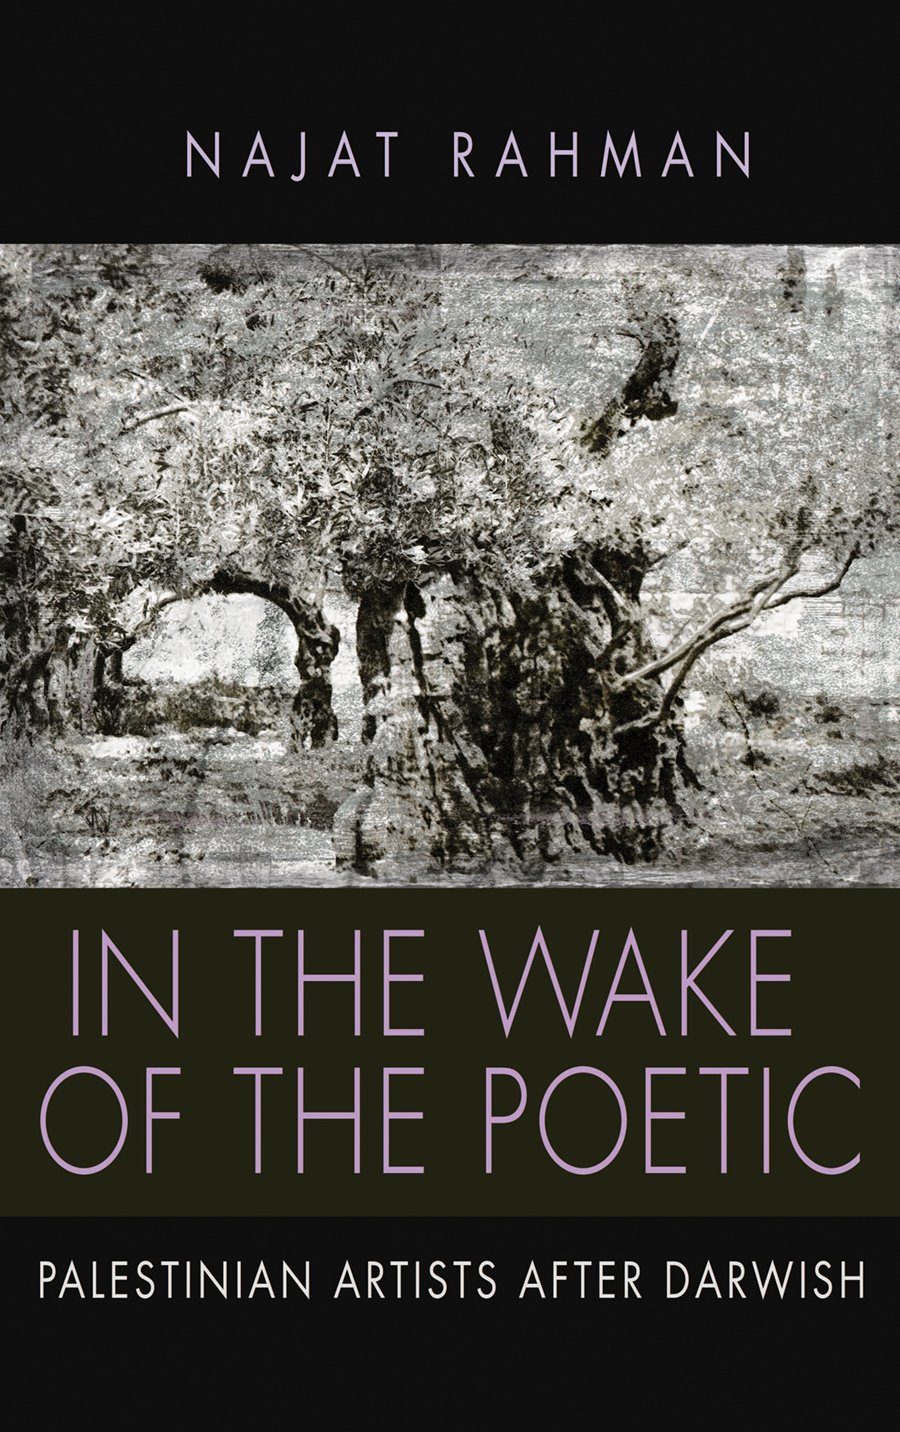 Palestinian Artists After Darwish In the Wake of the Poetic